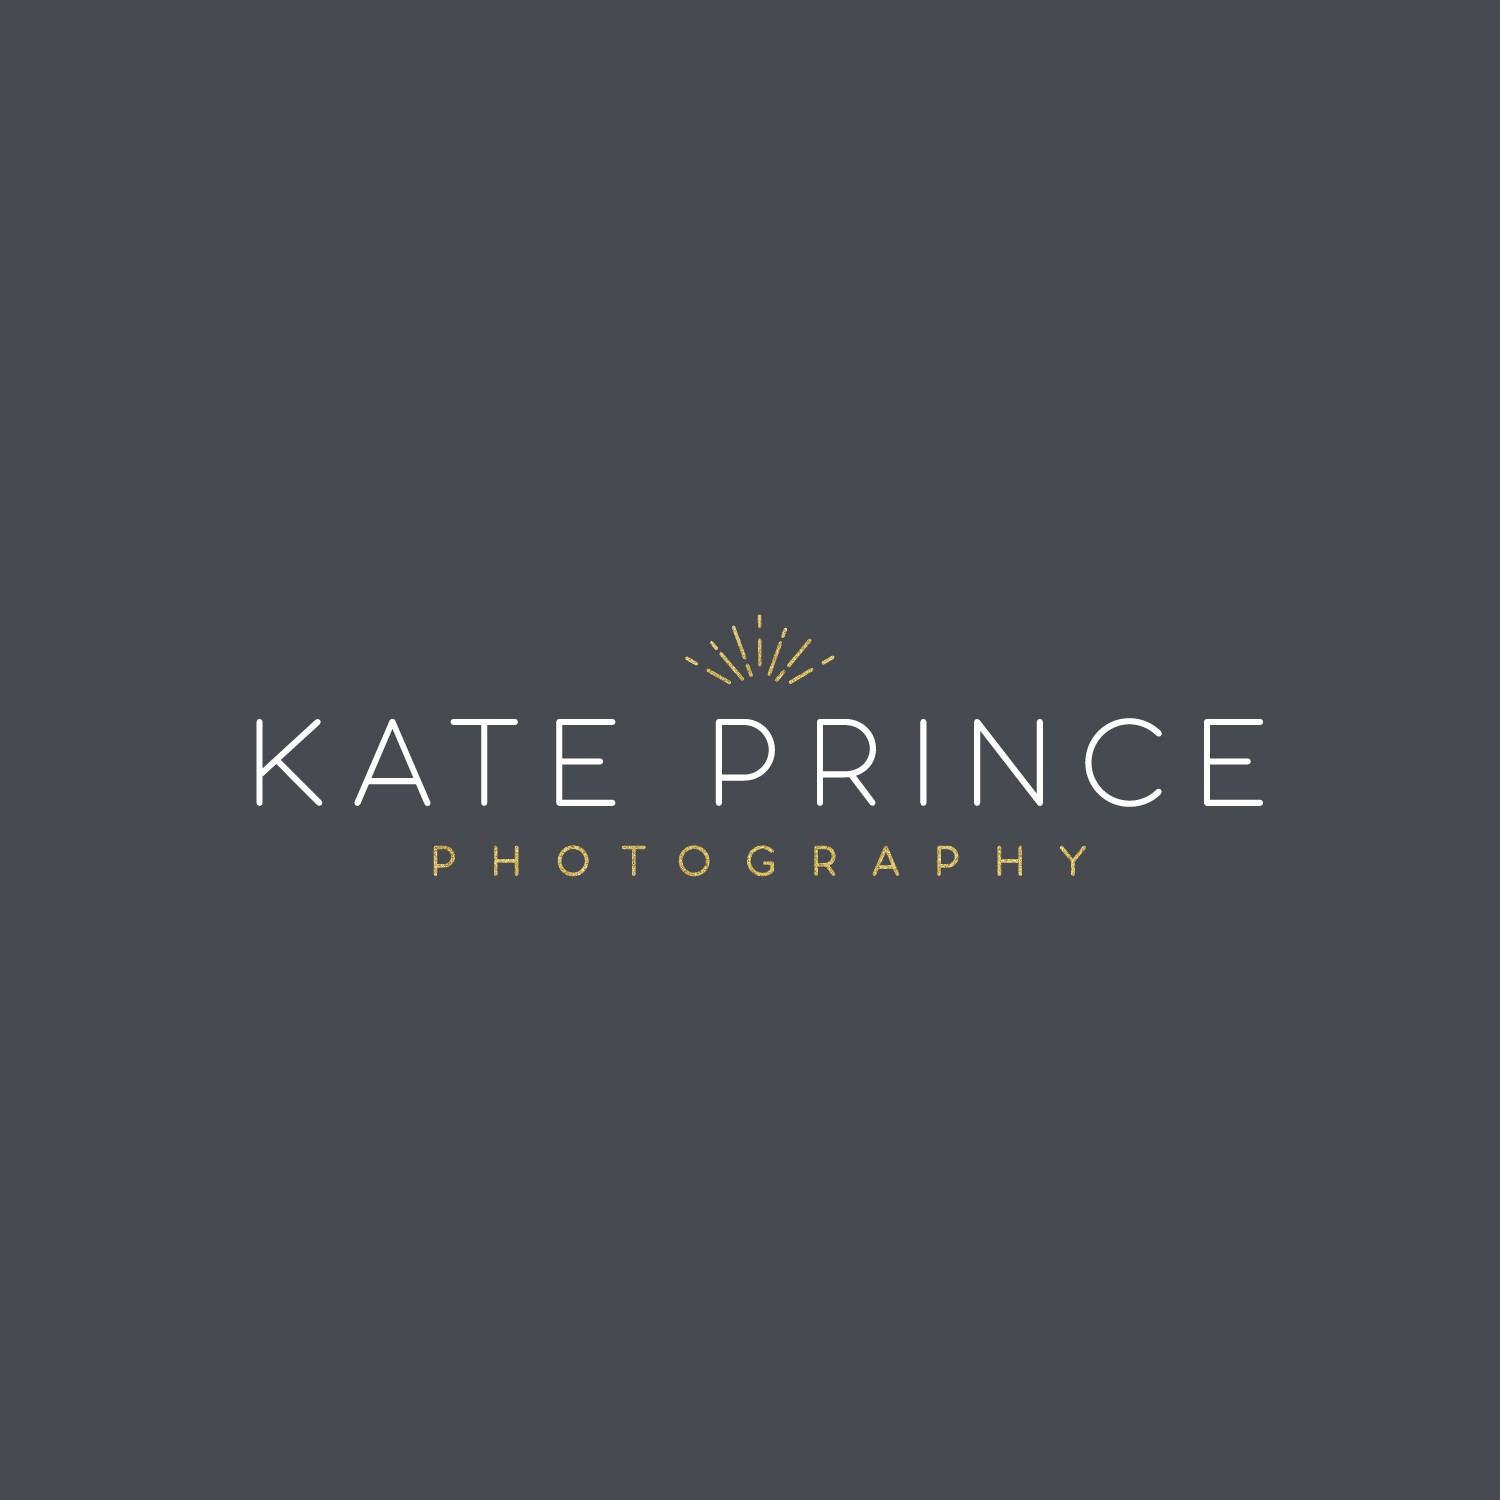 I've met my Prince and now am starting a photography business and need your help with Logo!!